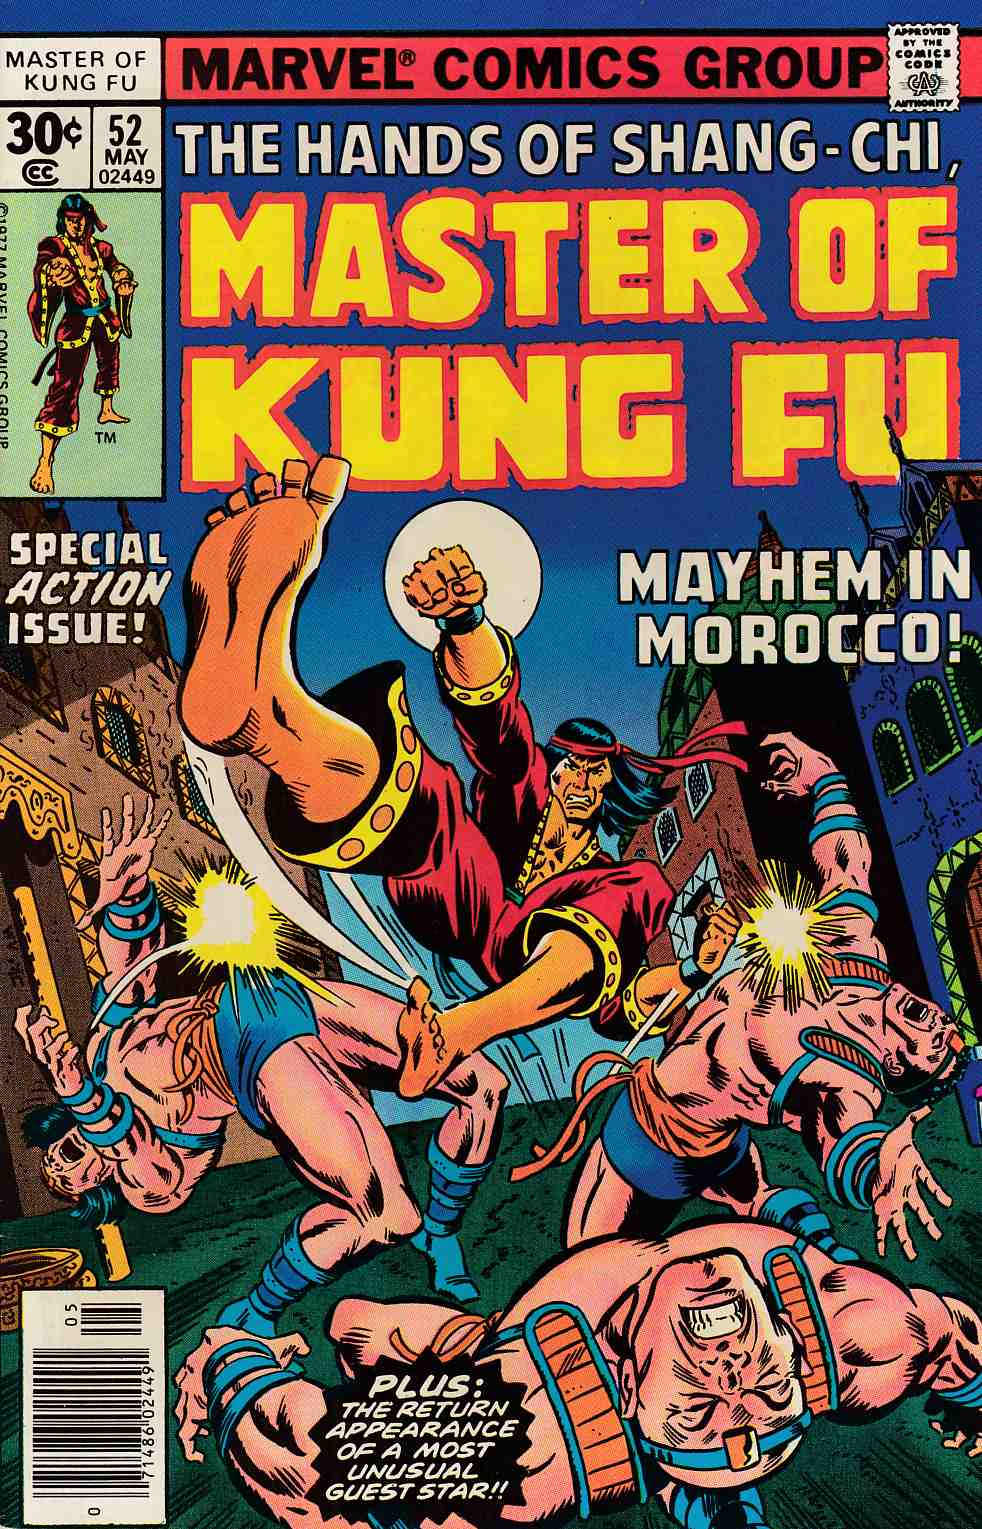 Master of Kung Fu #52 Very Fine (8.0) [Marvel Comic] LARGE